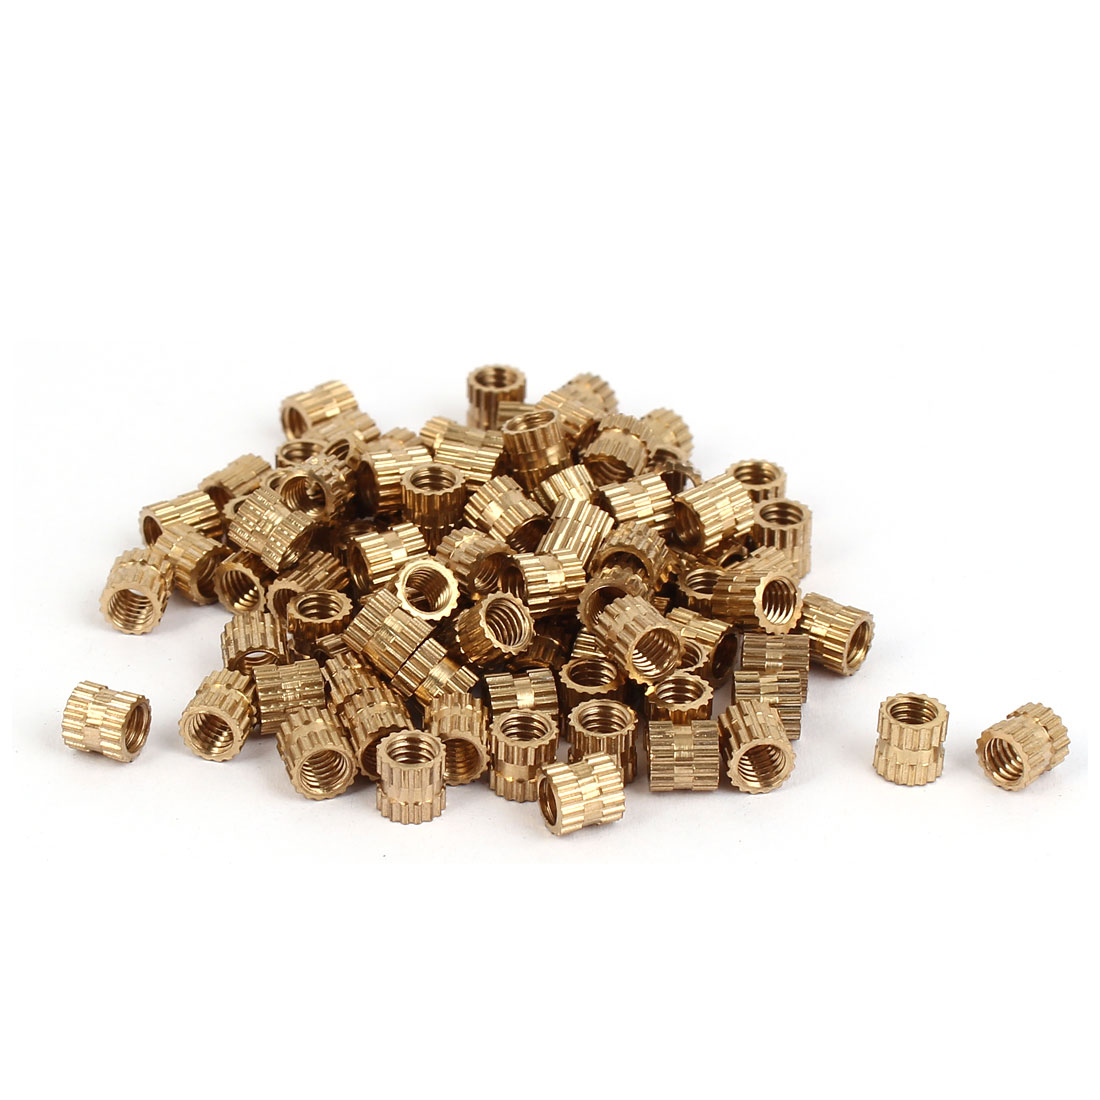 M4 x 5mm Brass Injection Molding Knurled Threaded Insert Embedment Nuts 100PCS